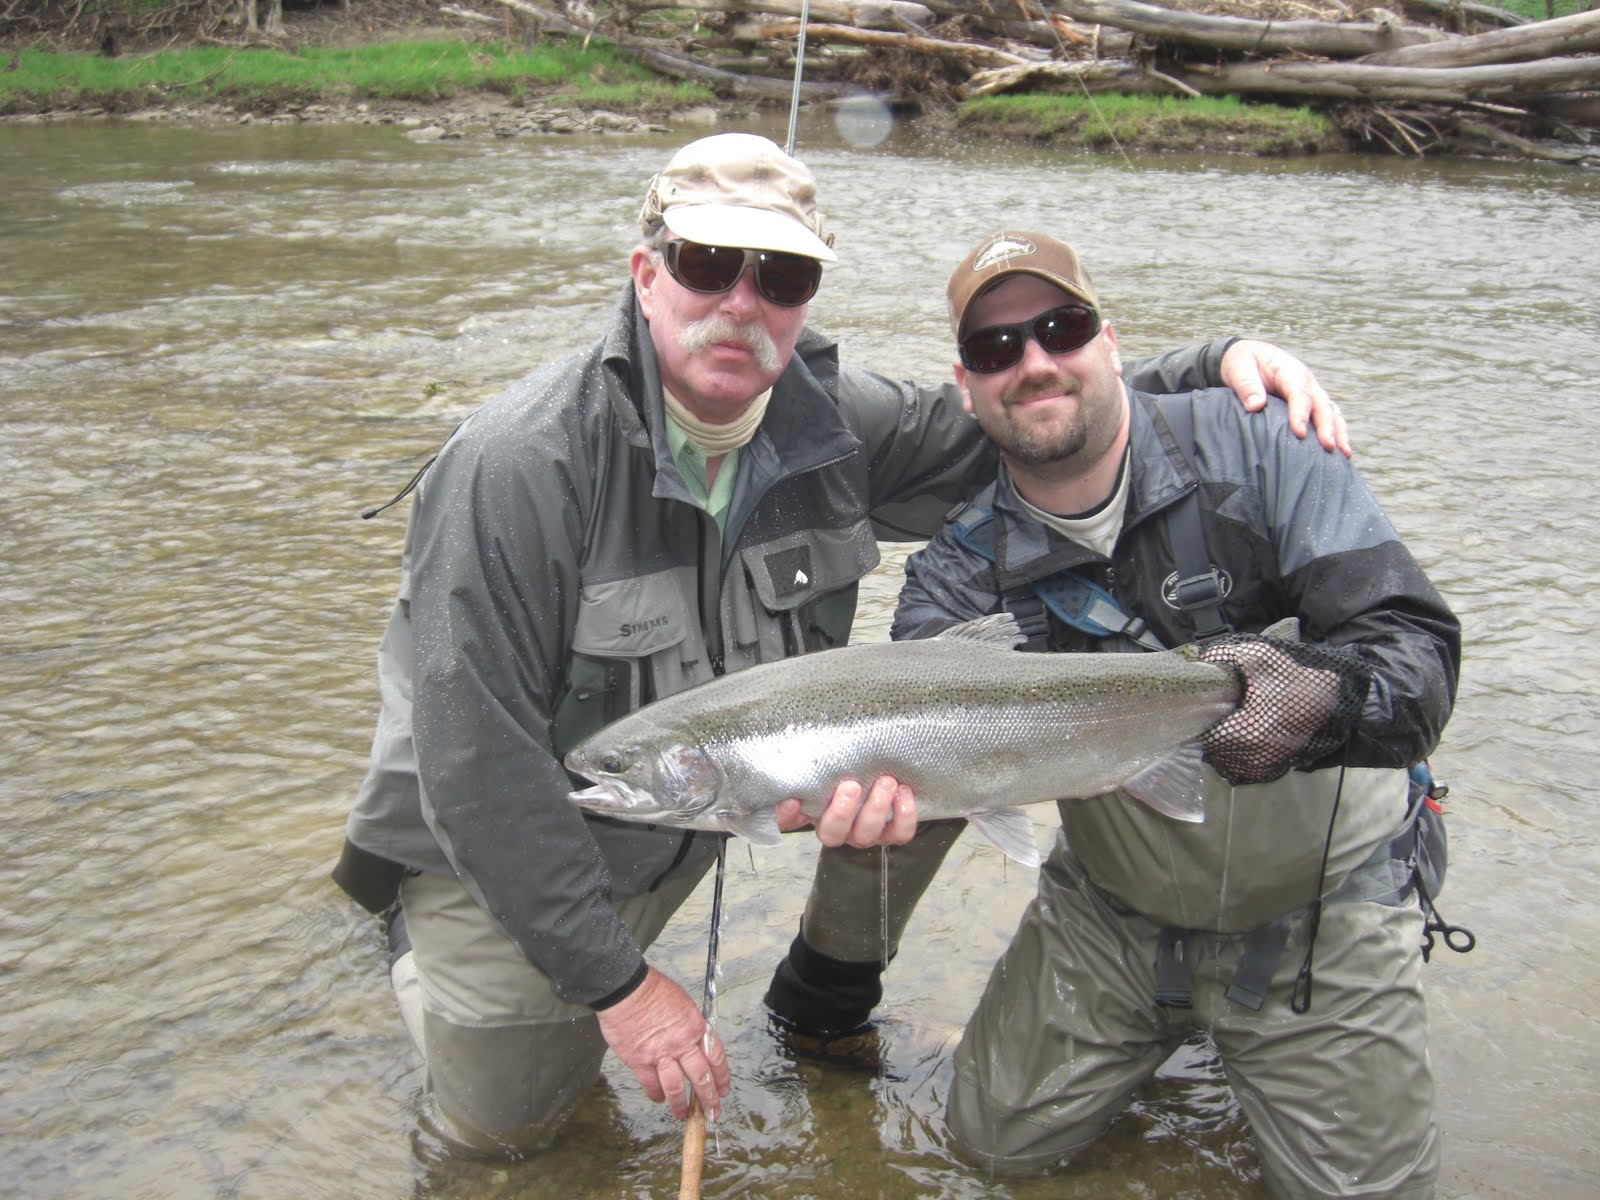 Steelhead alley outfitters lake erie fly fishing guide for Lake erie fishing